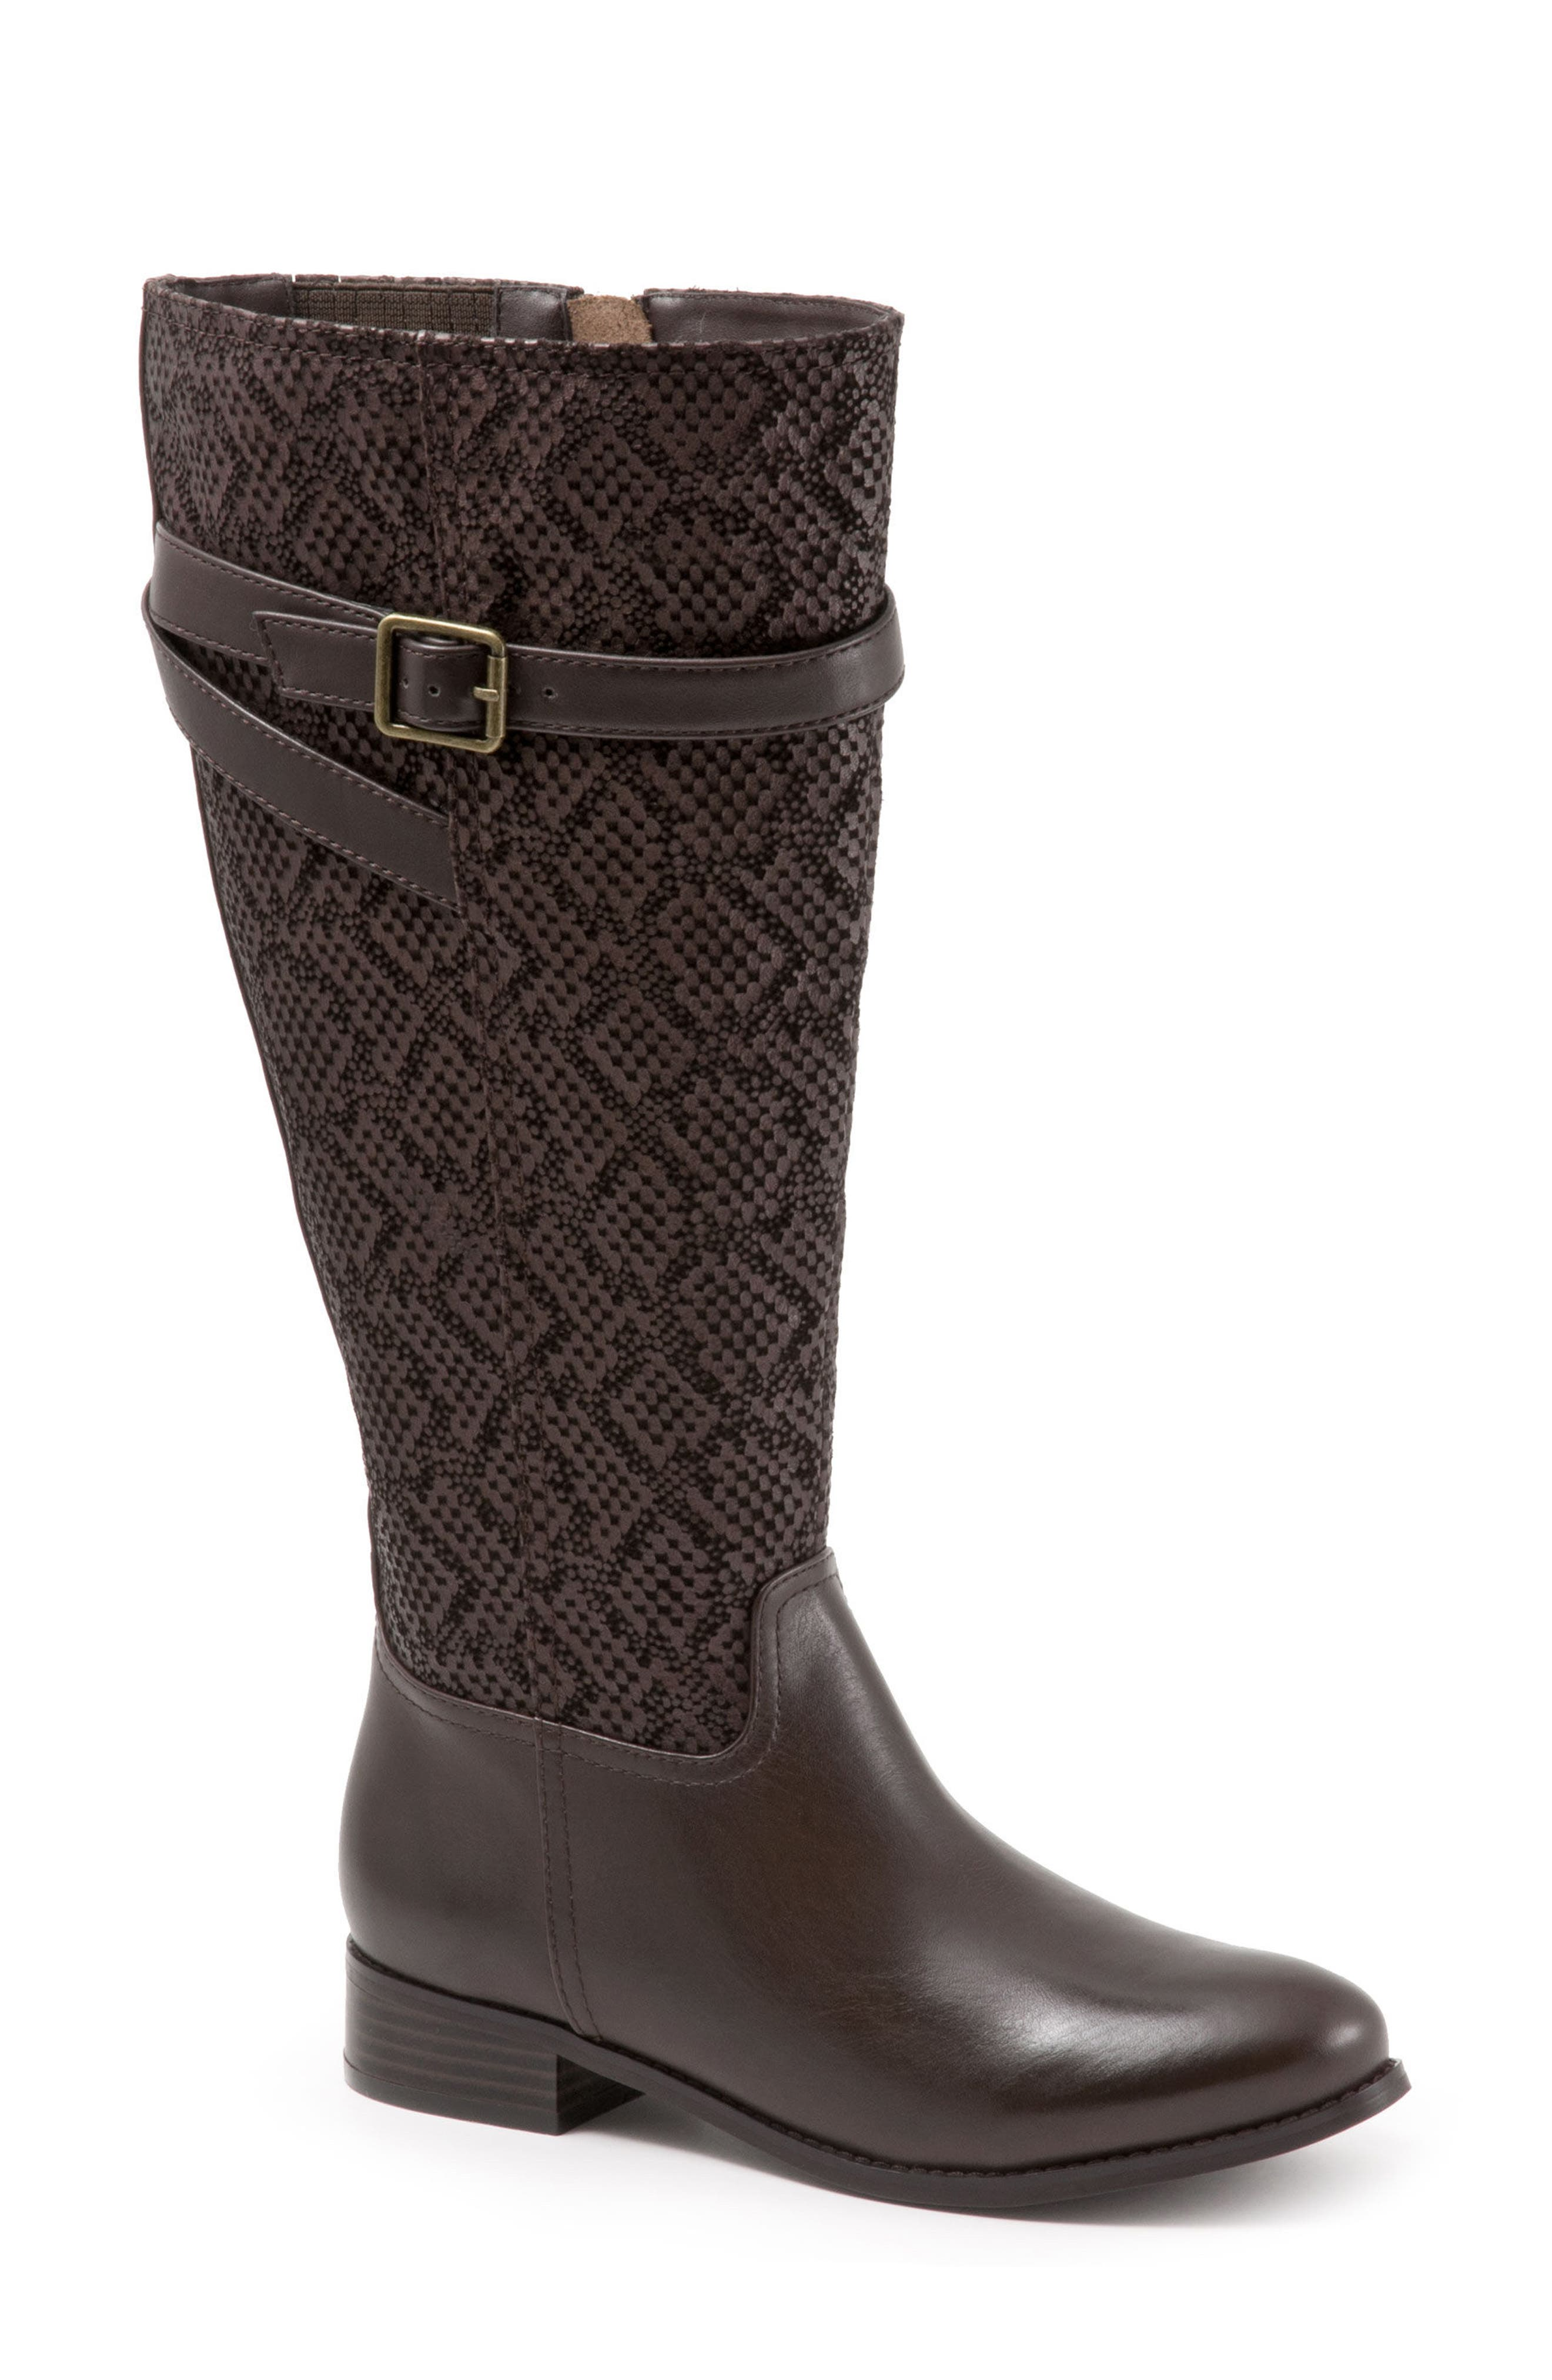 Alternate Image 1 Selected - Trotters Lyra Tall Boot (Women)